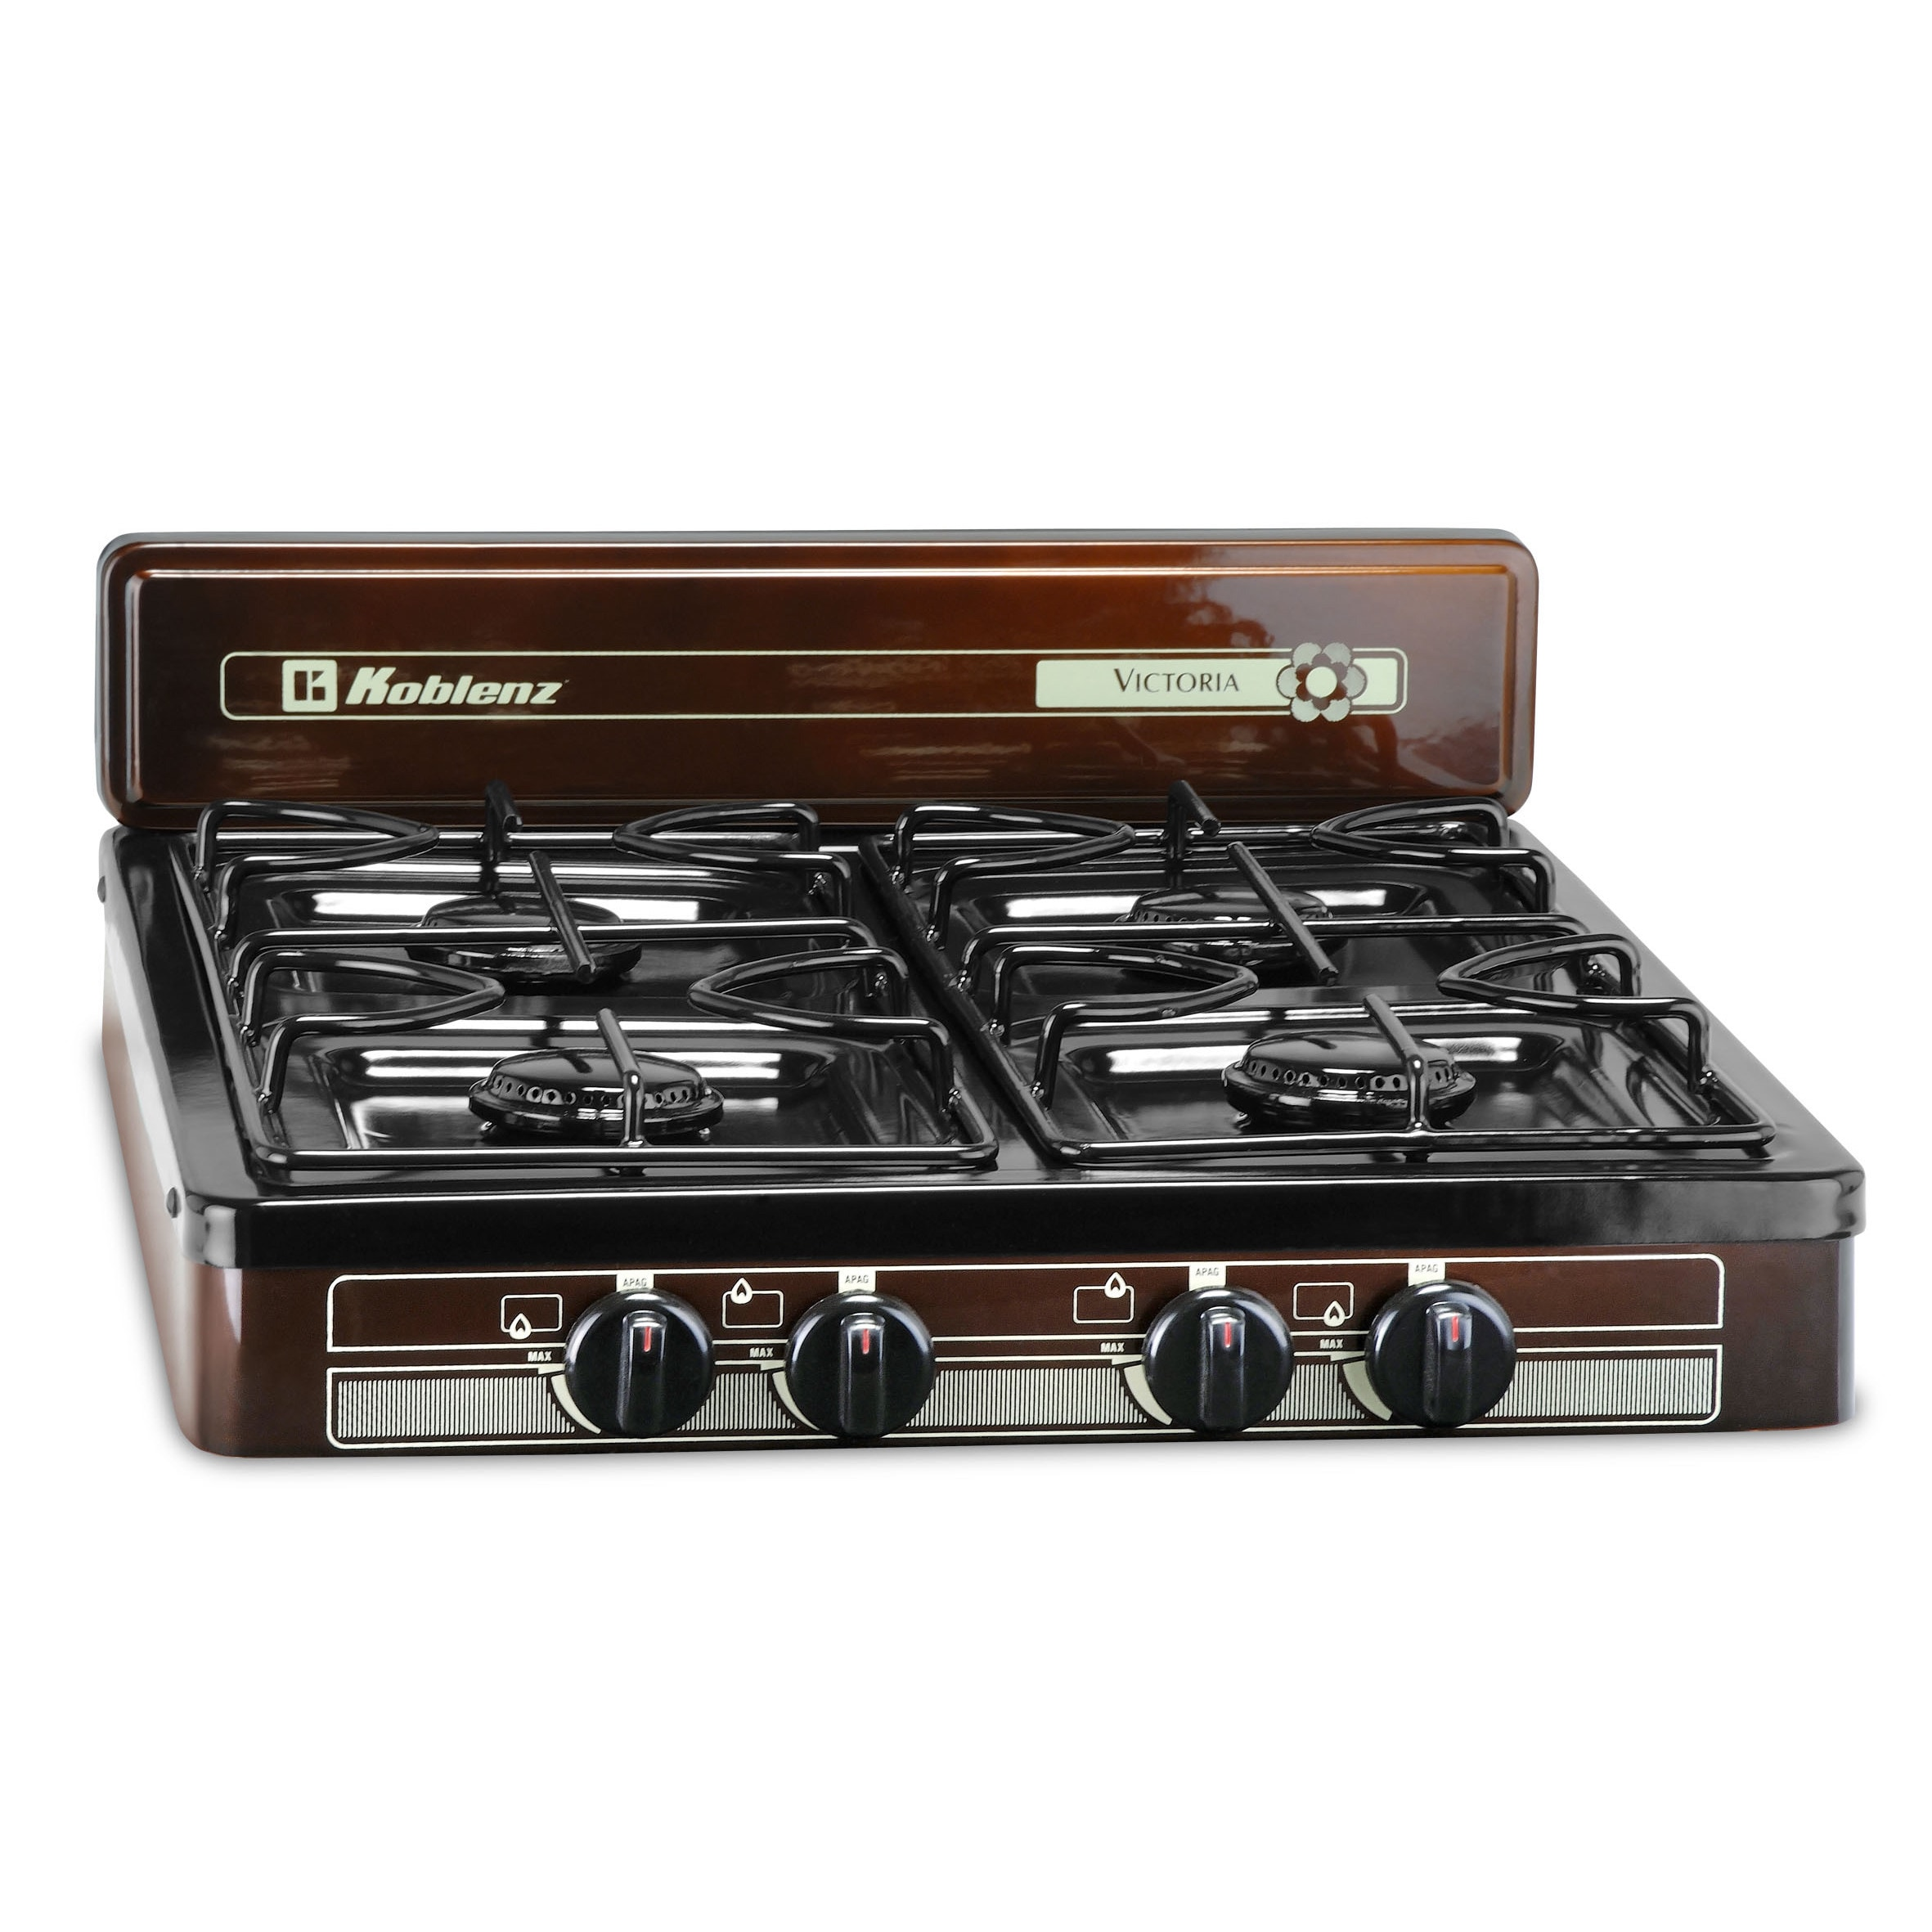 Copy Shop Koblenz Koblenz 4 Burner Steel And Porcelain Outdoor Stove Top